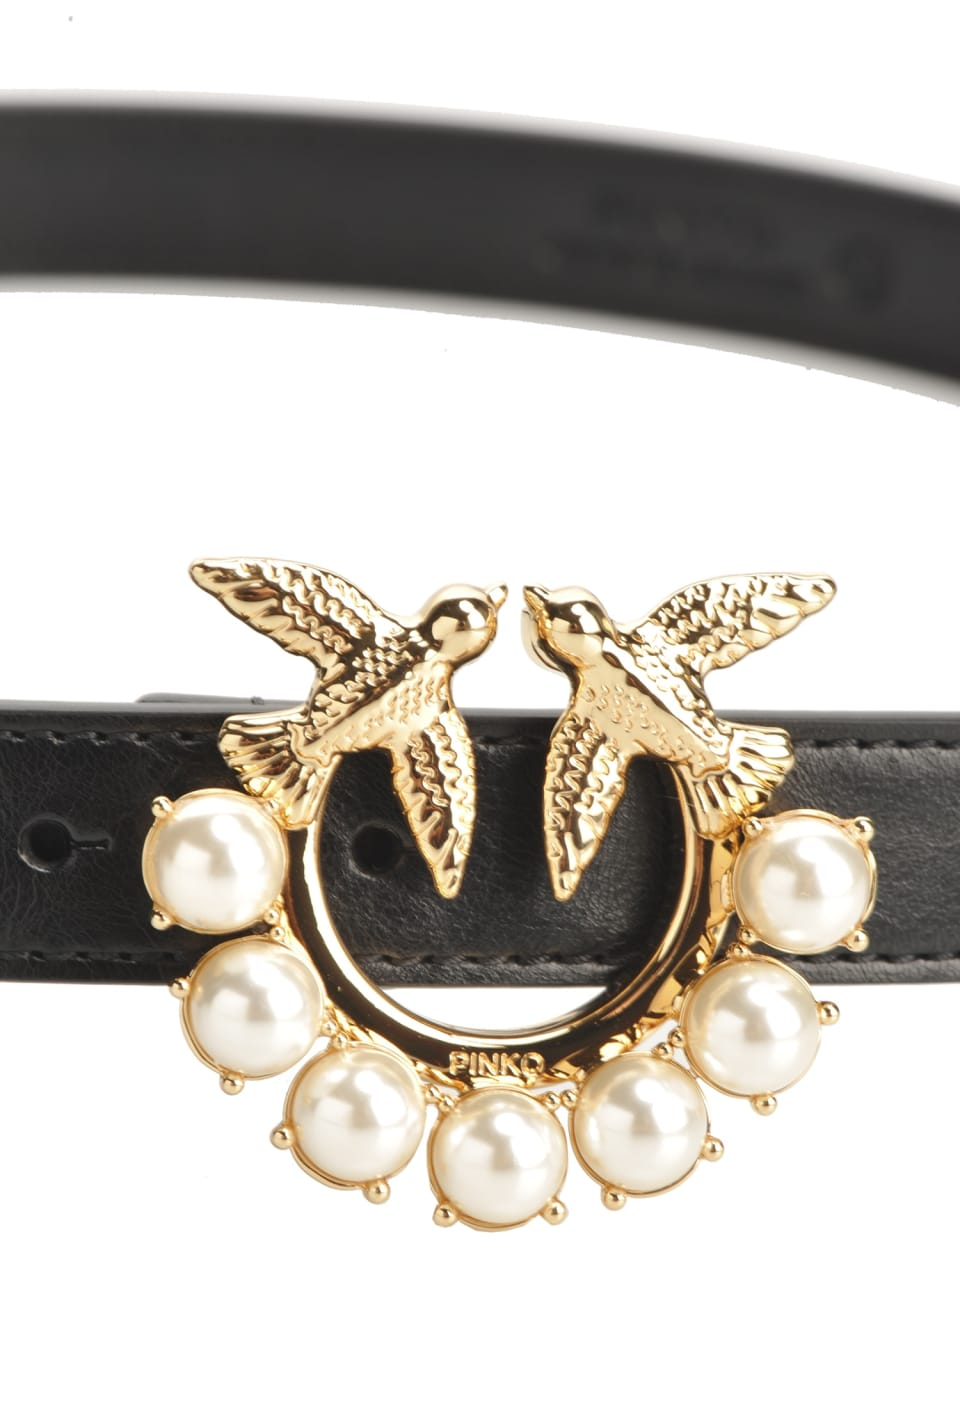 Vintage belt with Love Birds buckle and pearls